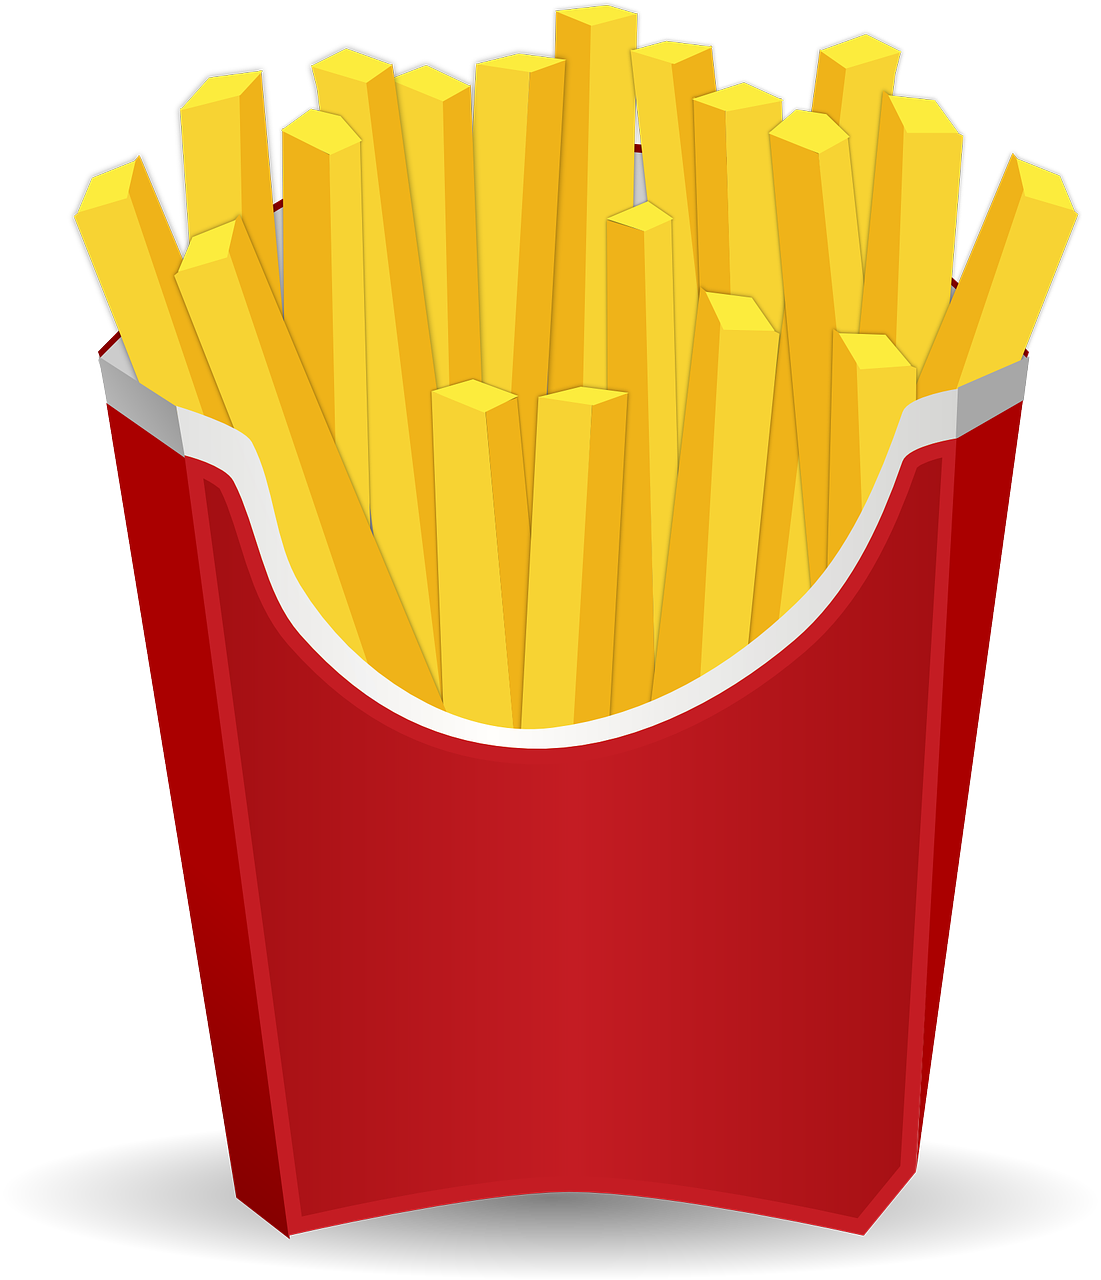 chips french fries. Emoji clipart fry